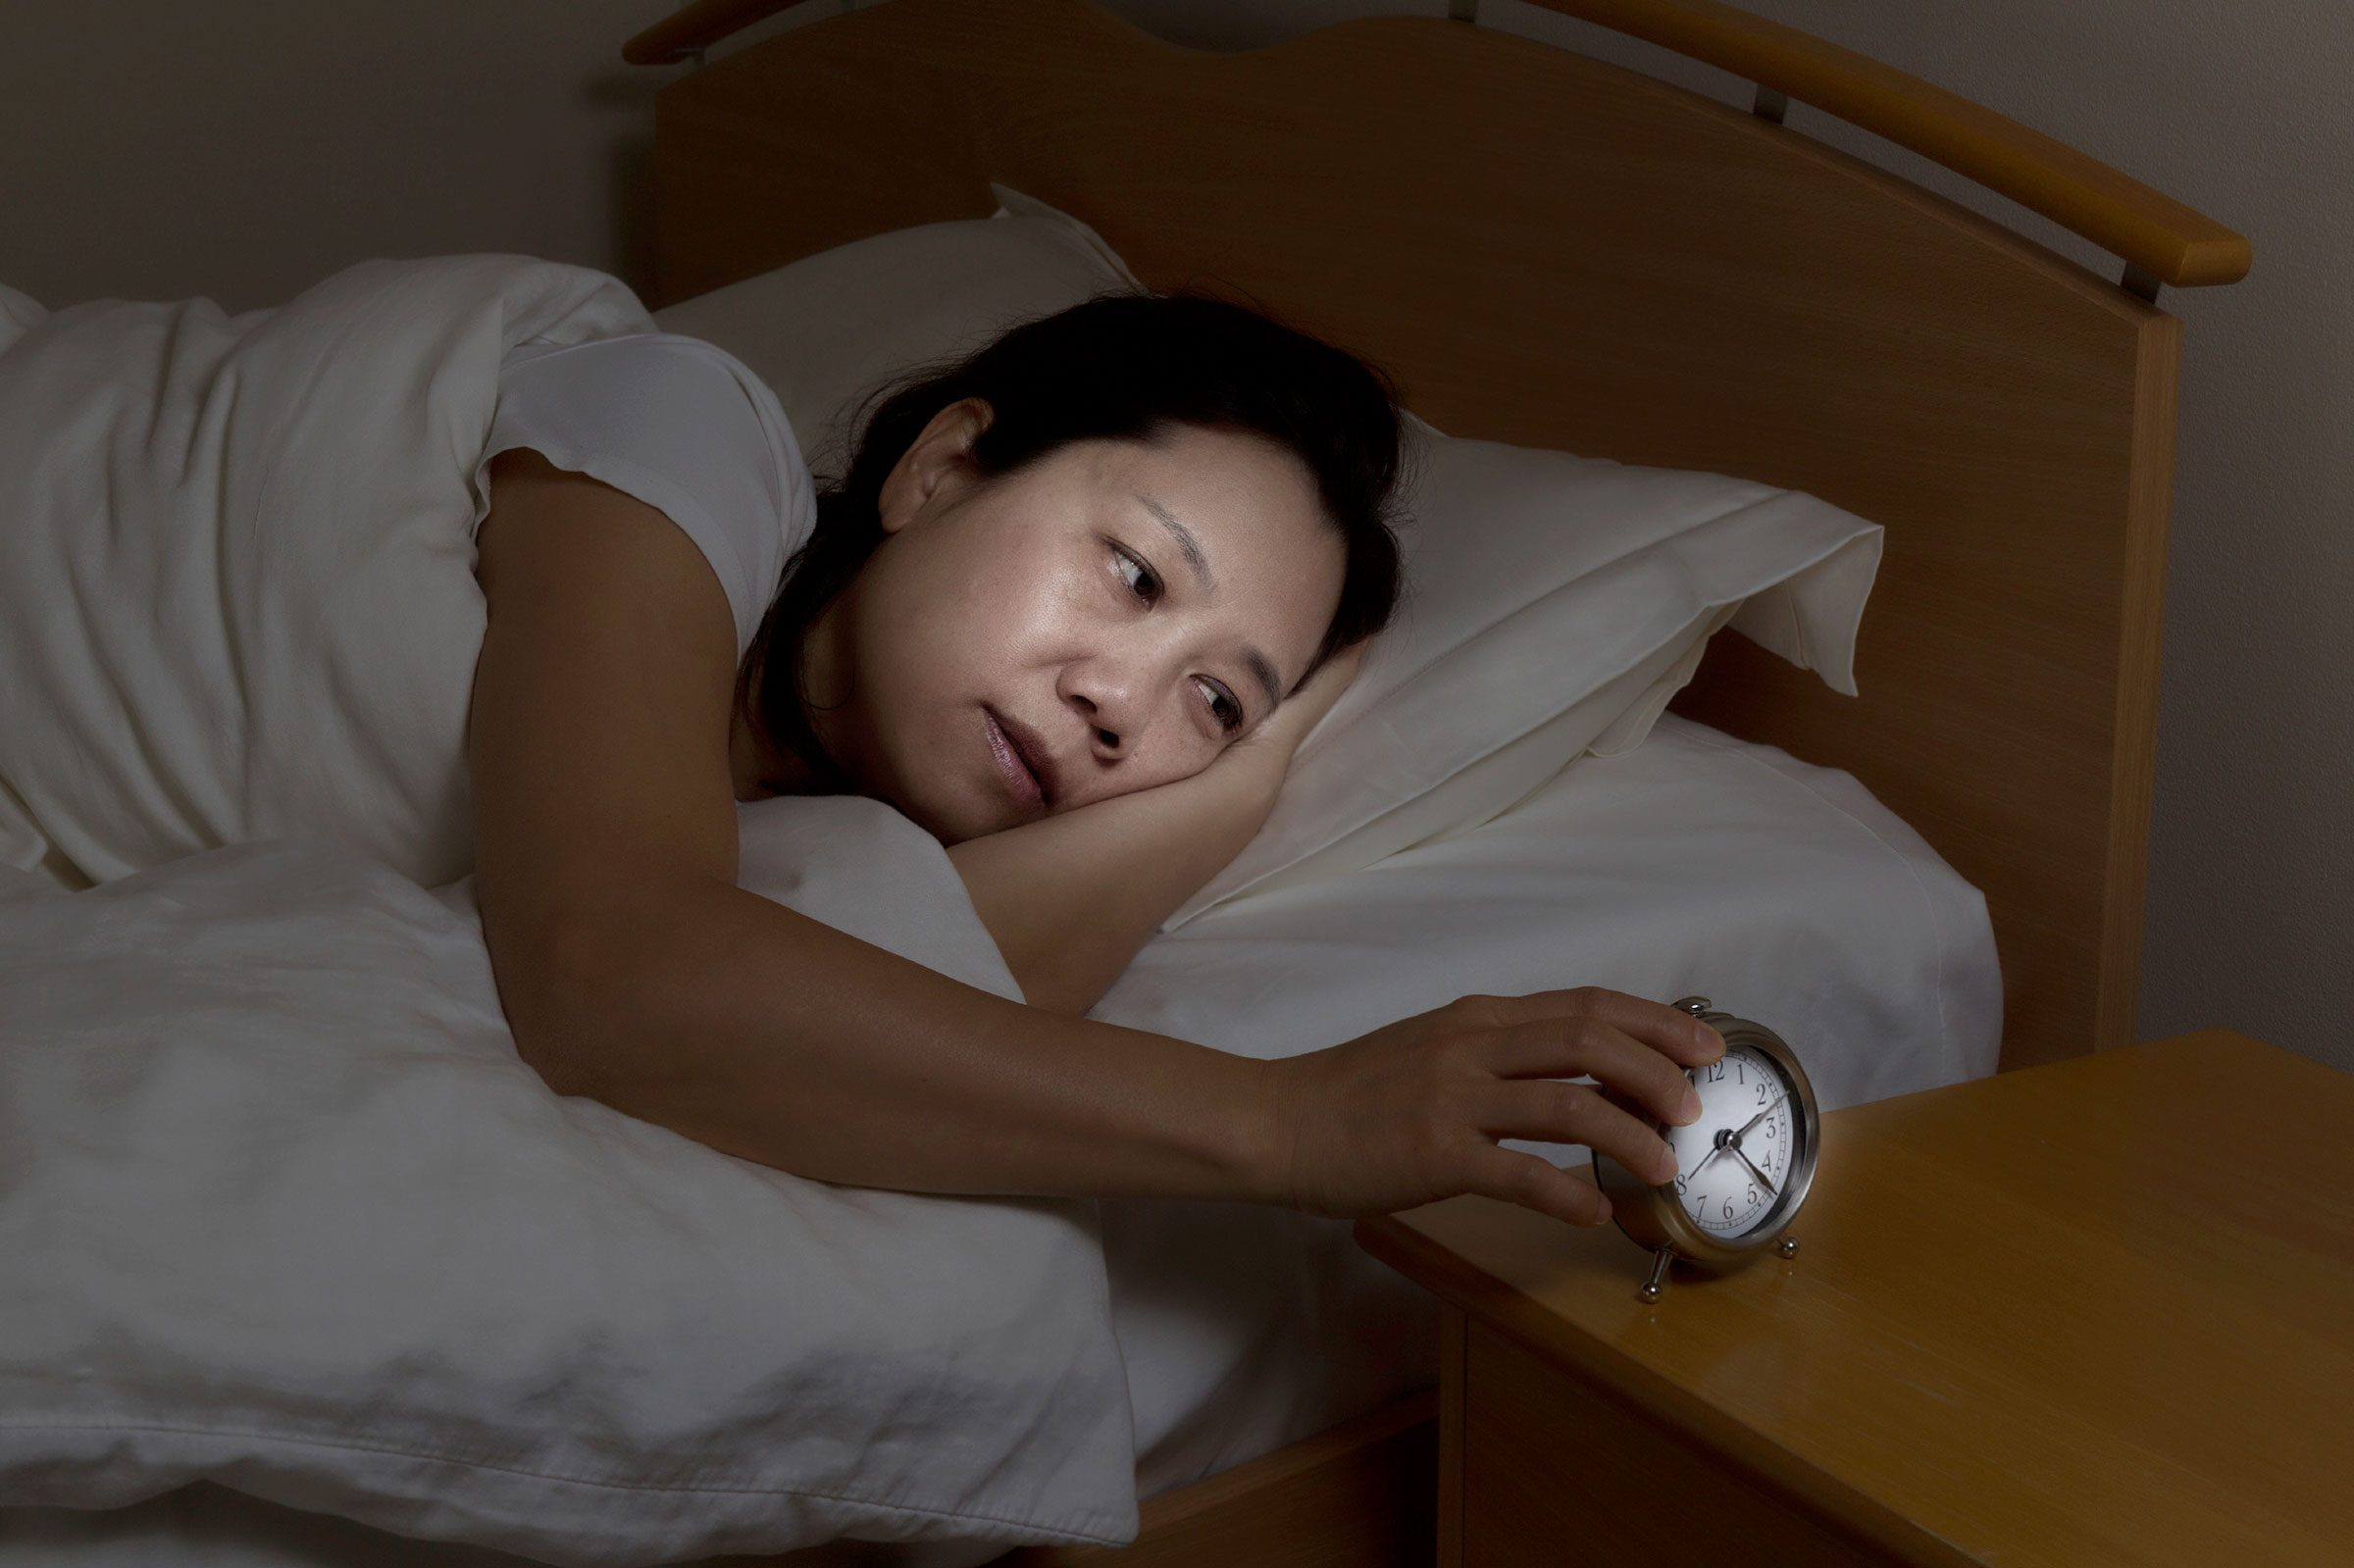 Myth: If you have a couple bad nights of sleep, you must have insomnia